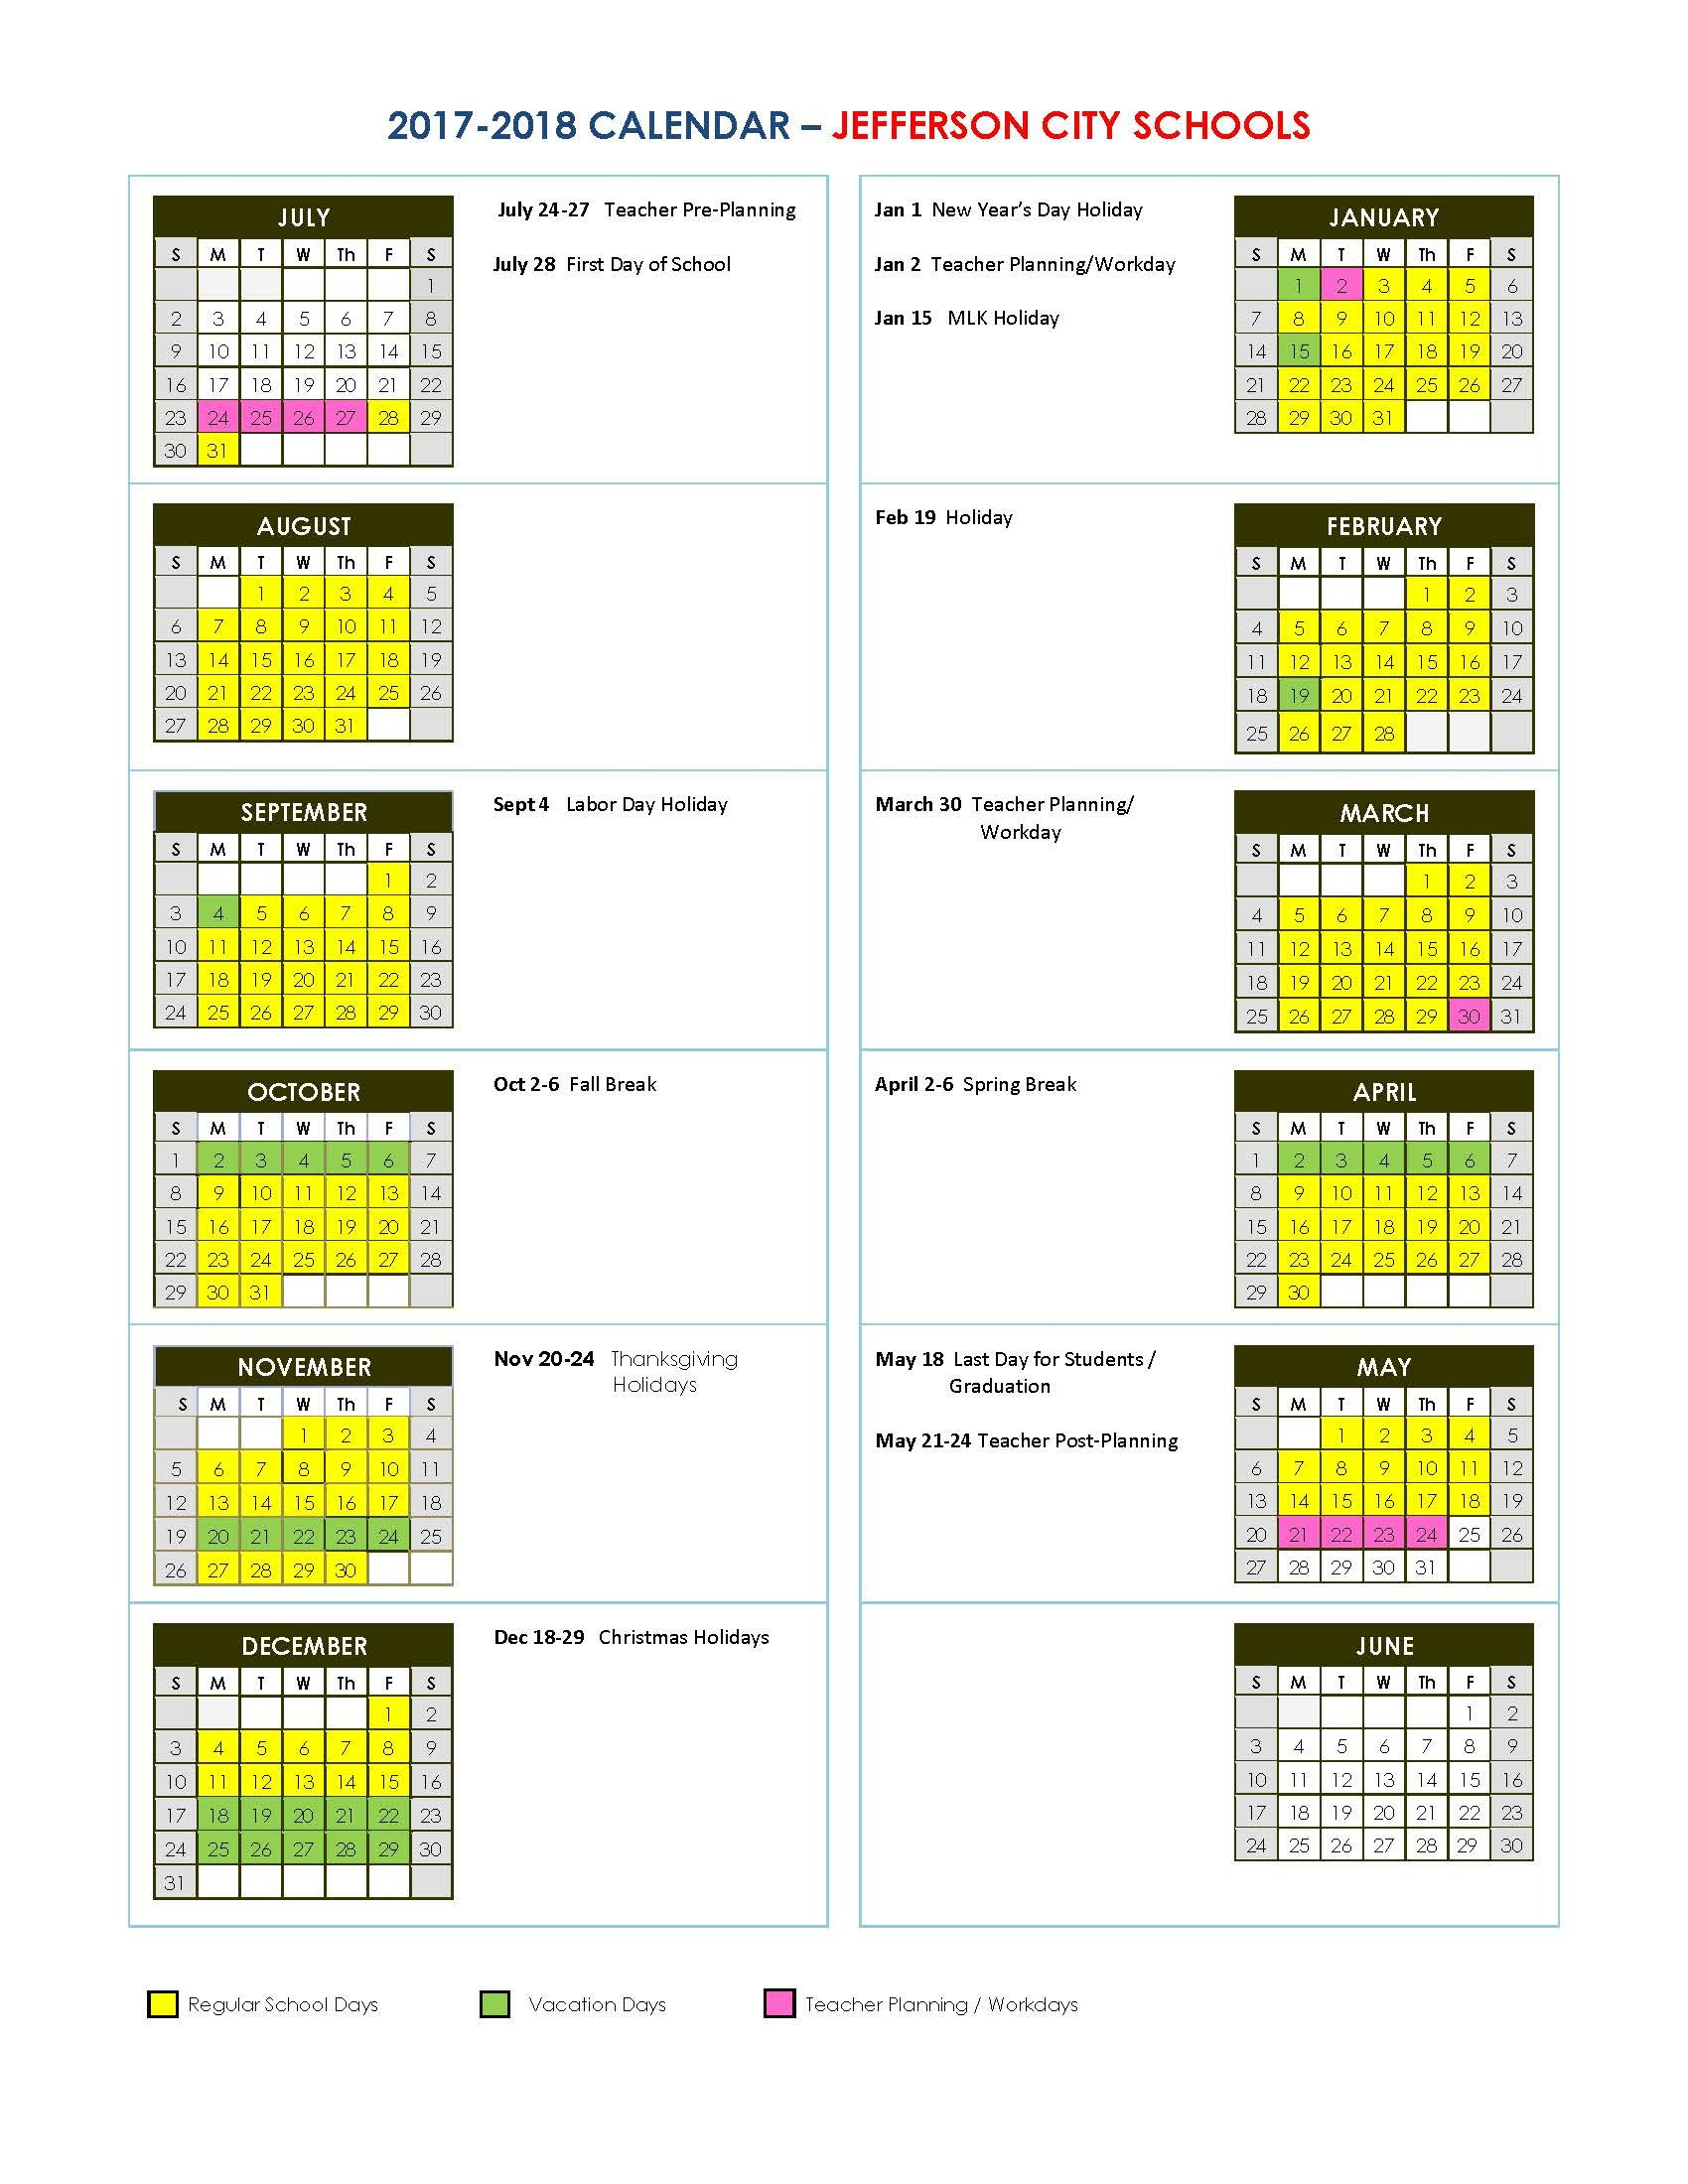 Jefferson City Schools Uga Academic Calendar 2019-20